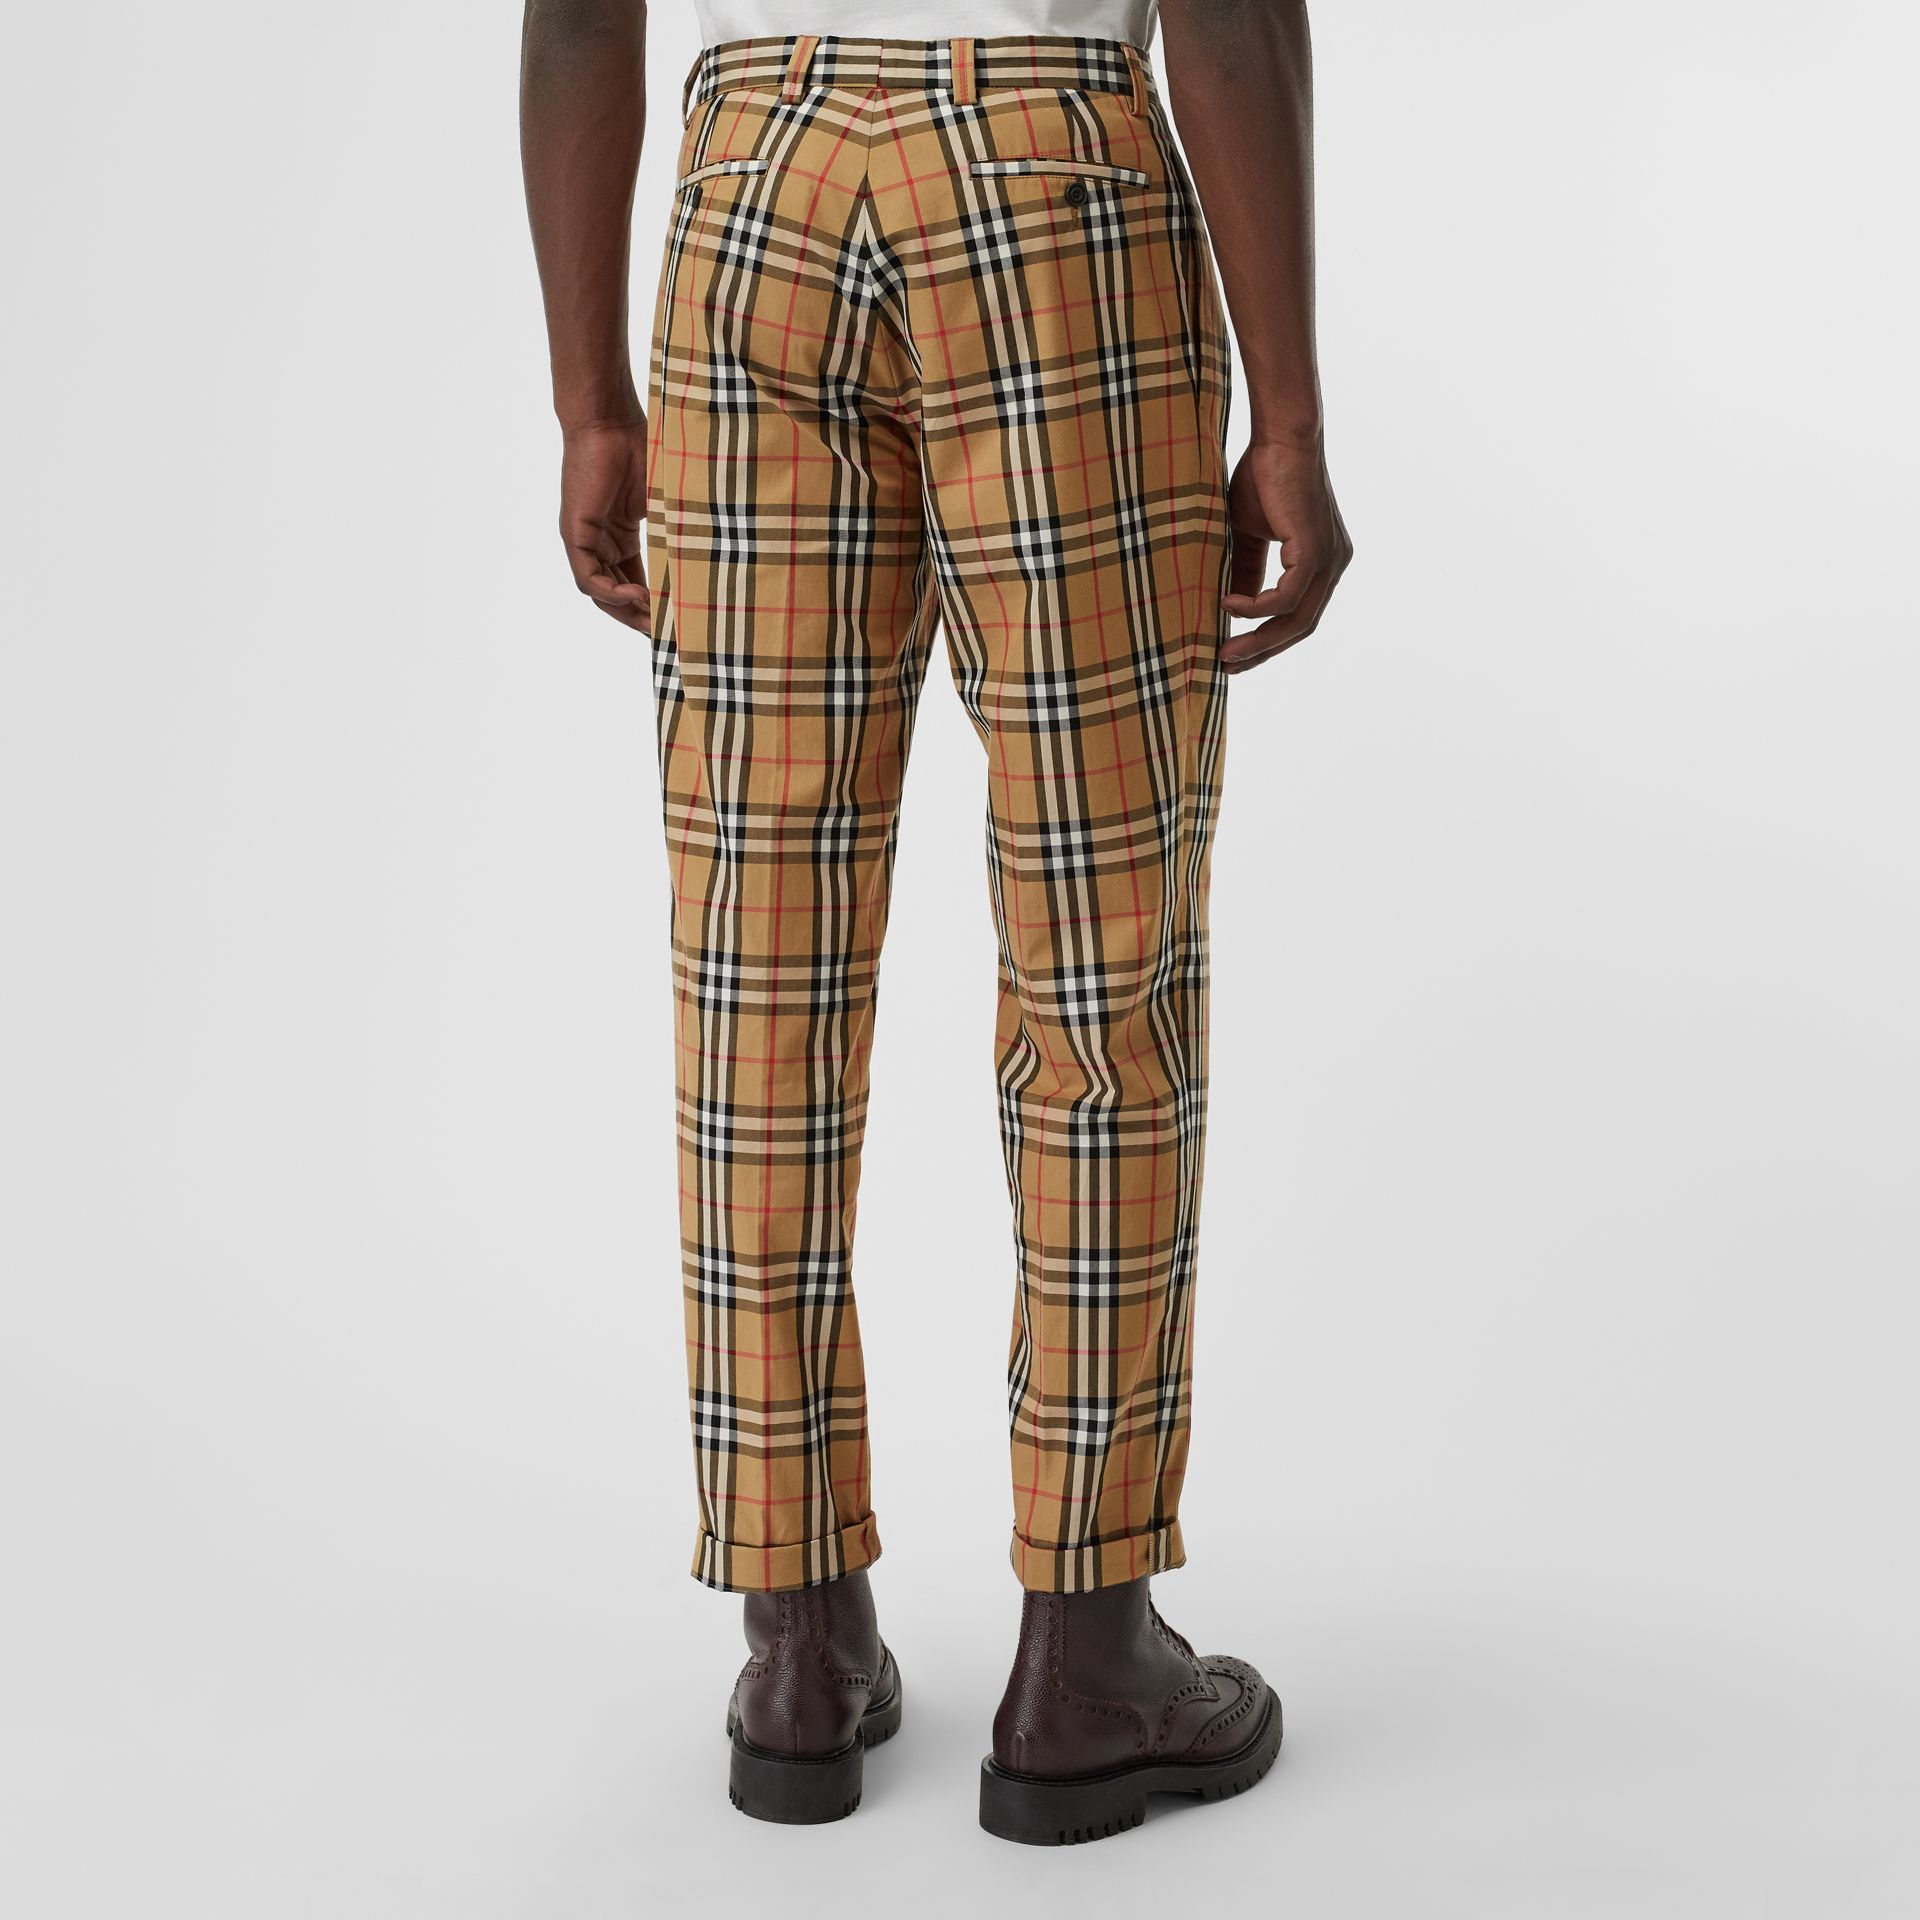 Pantalon en coton à motif Vintage check (Jaune Antique) - Homme | Burberry Canada - photo de la galerie 2